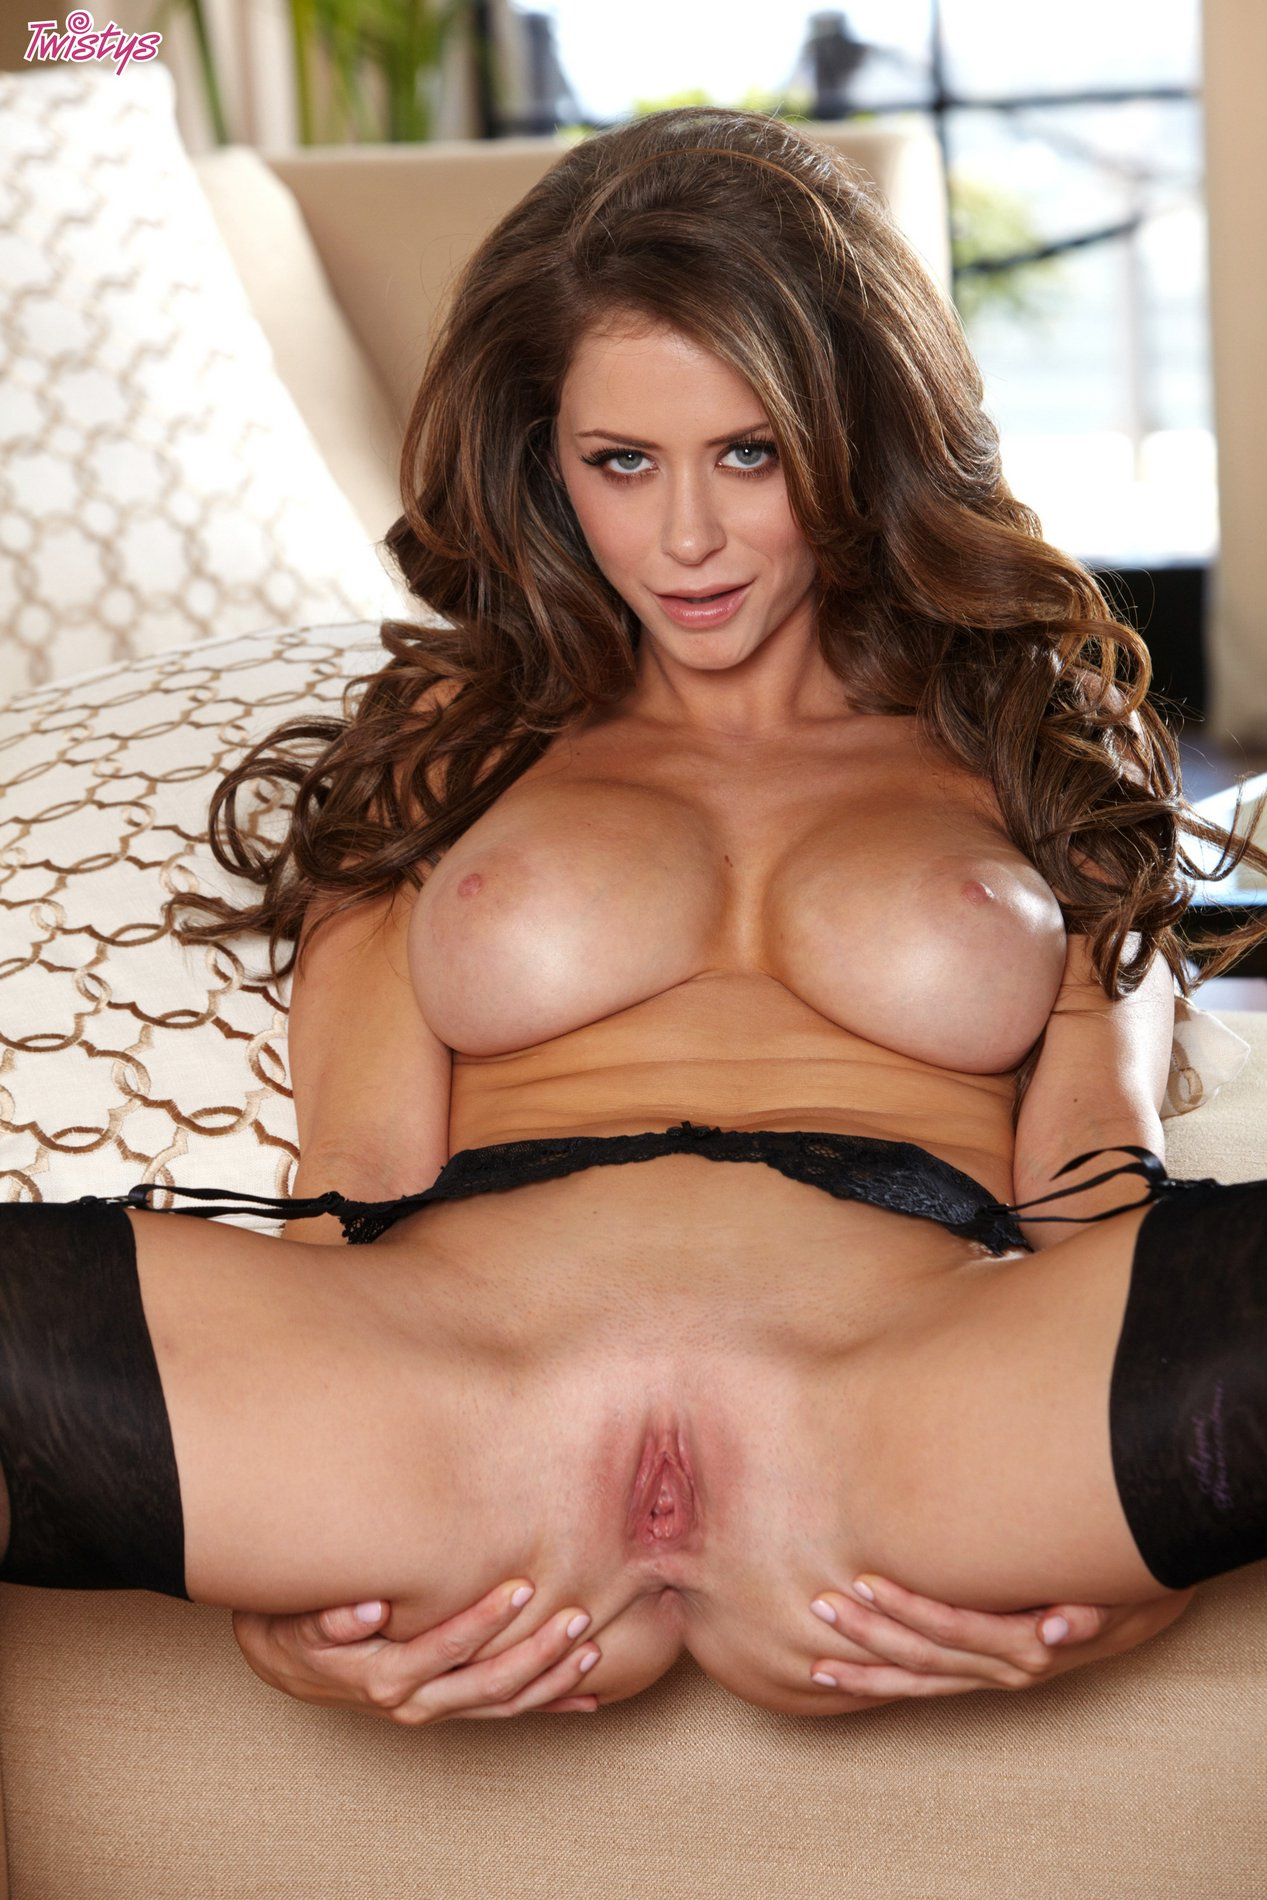 emily addison in sexy black stockings poses for camera - my pornstar